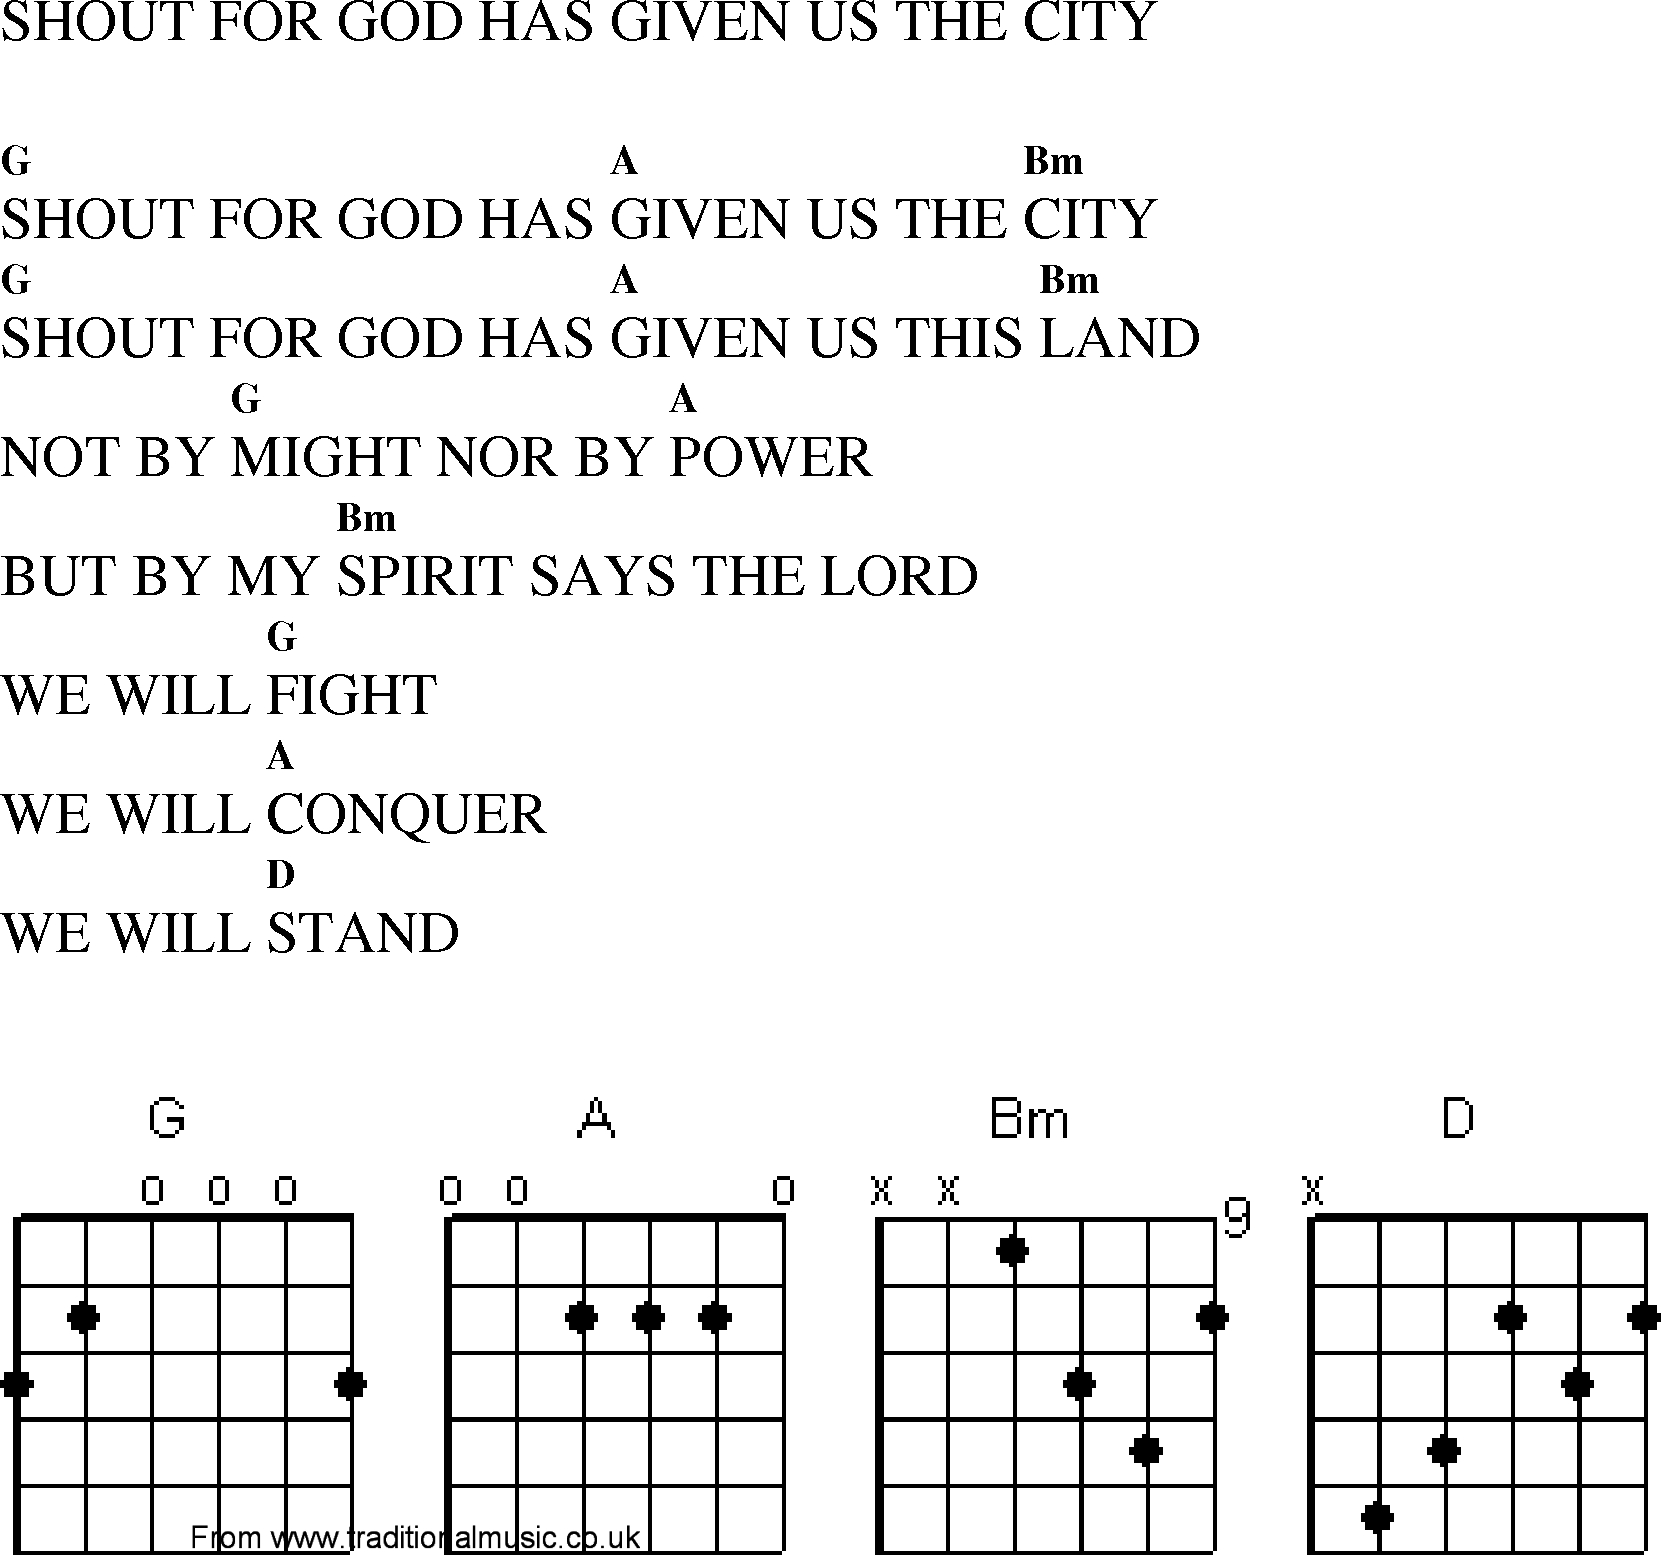 Shout To The Lord Chords Christian Gospel Worship Song Lyrics With Chords Shout For God Has